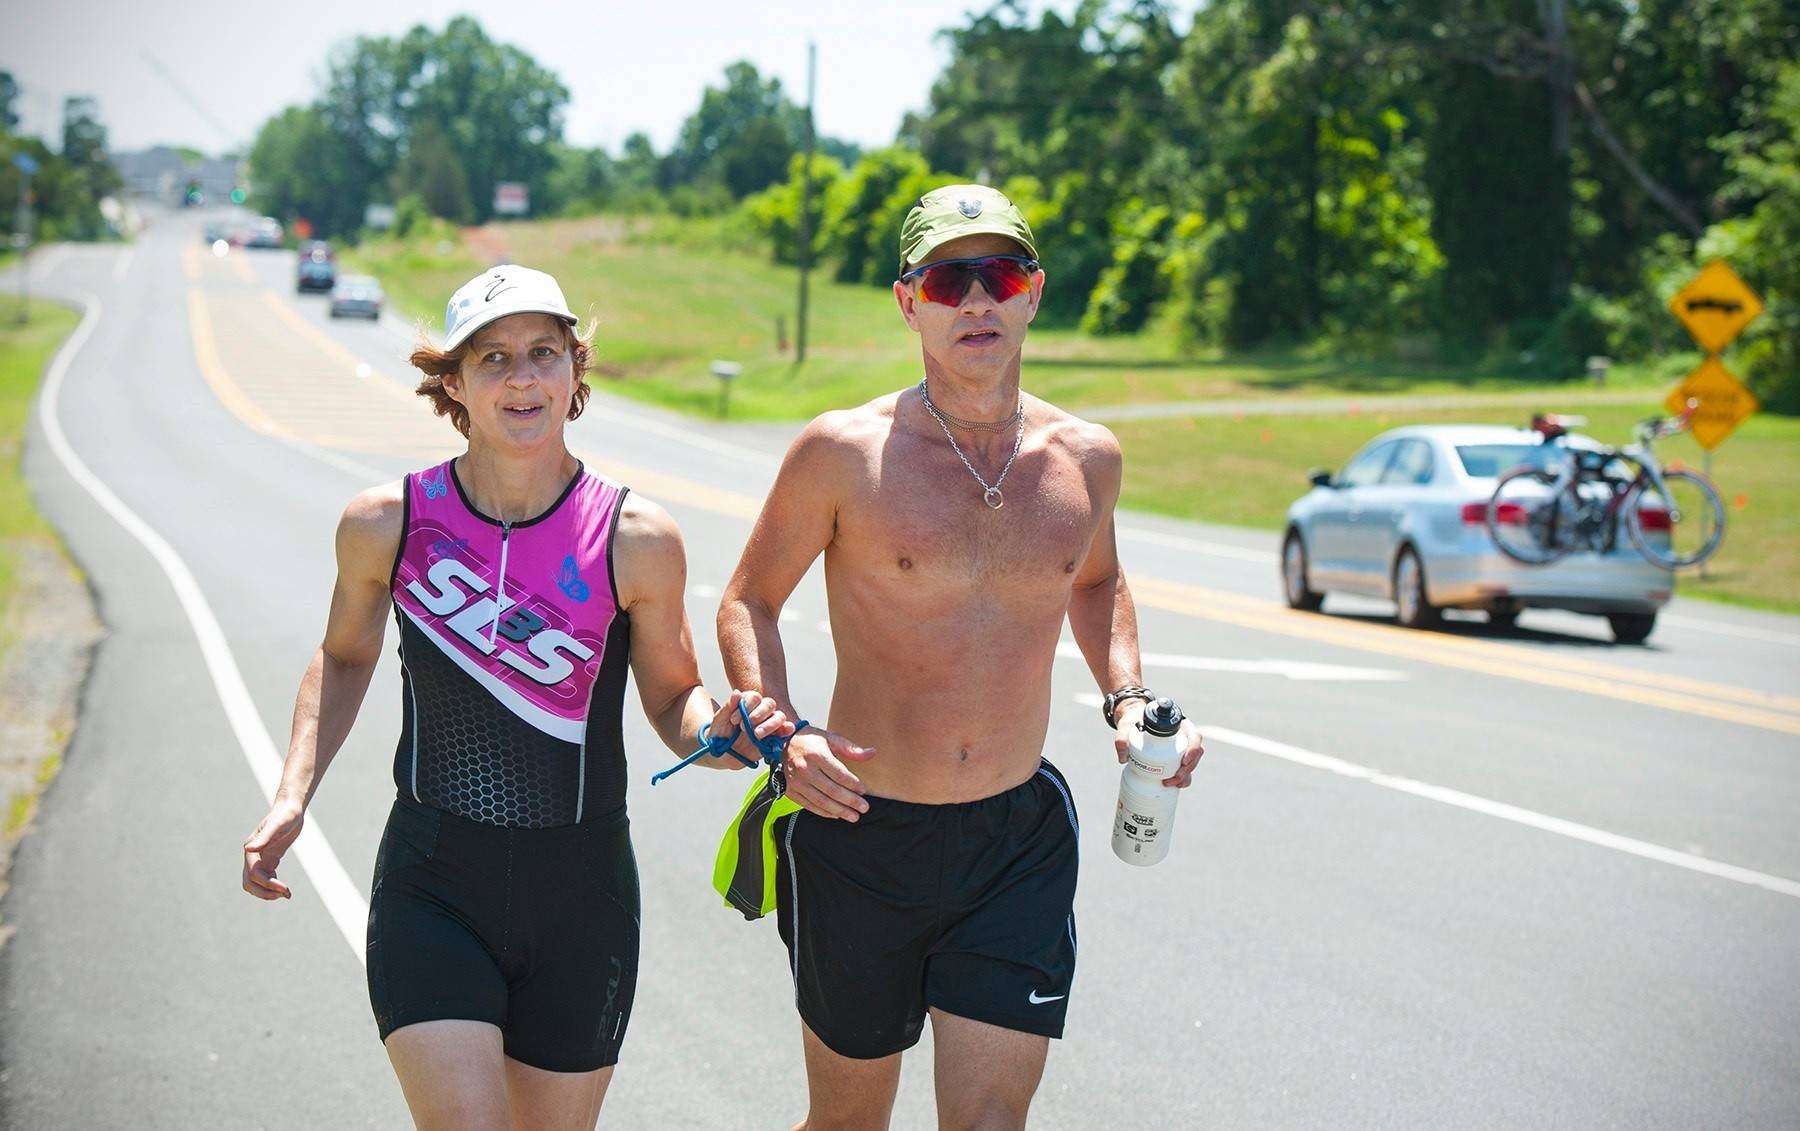 Tina Ament holds onto a bungie cord connected to her guide, Kevin Streeter, as they go for a run. Ament, who is blind, is training for the Ironman Triathlon in Hawaii.